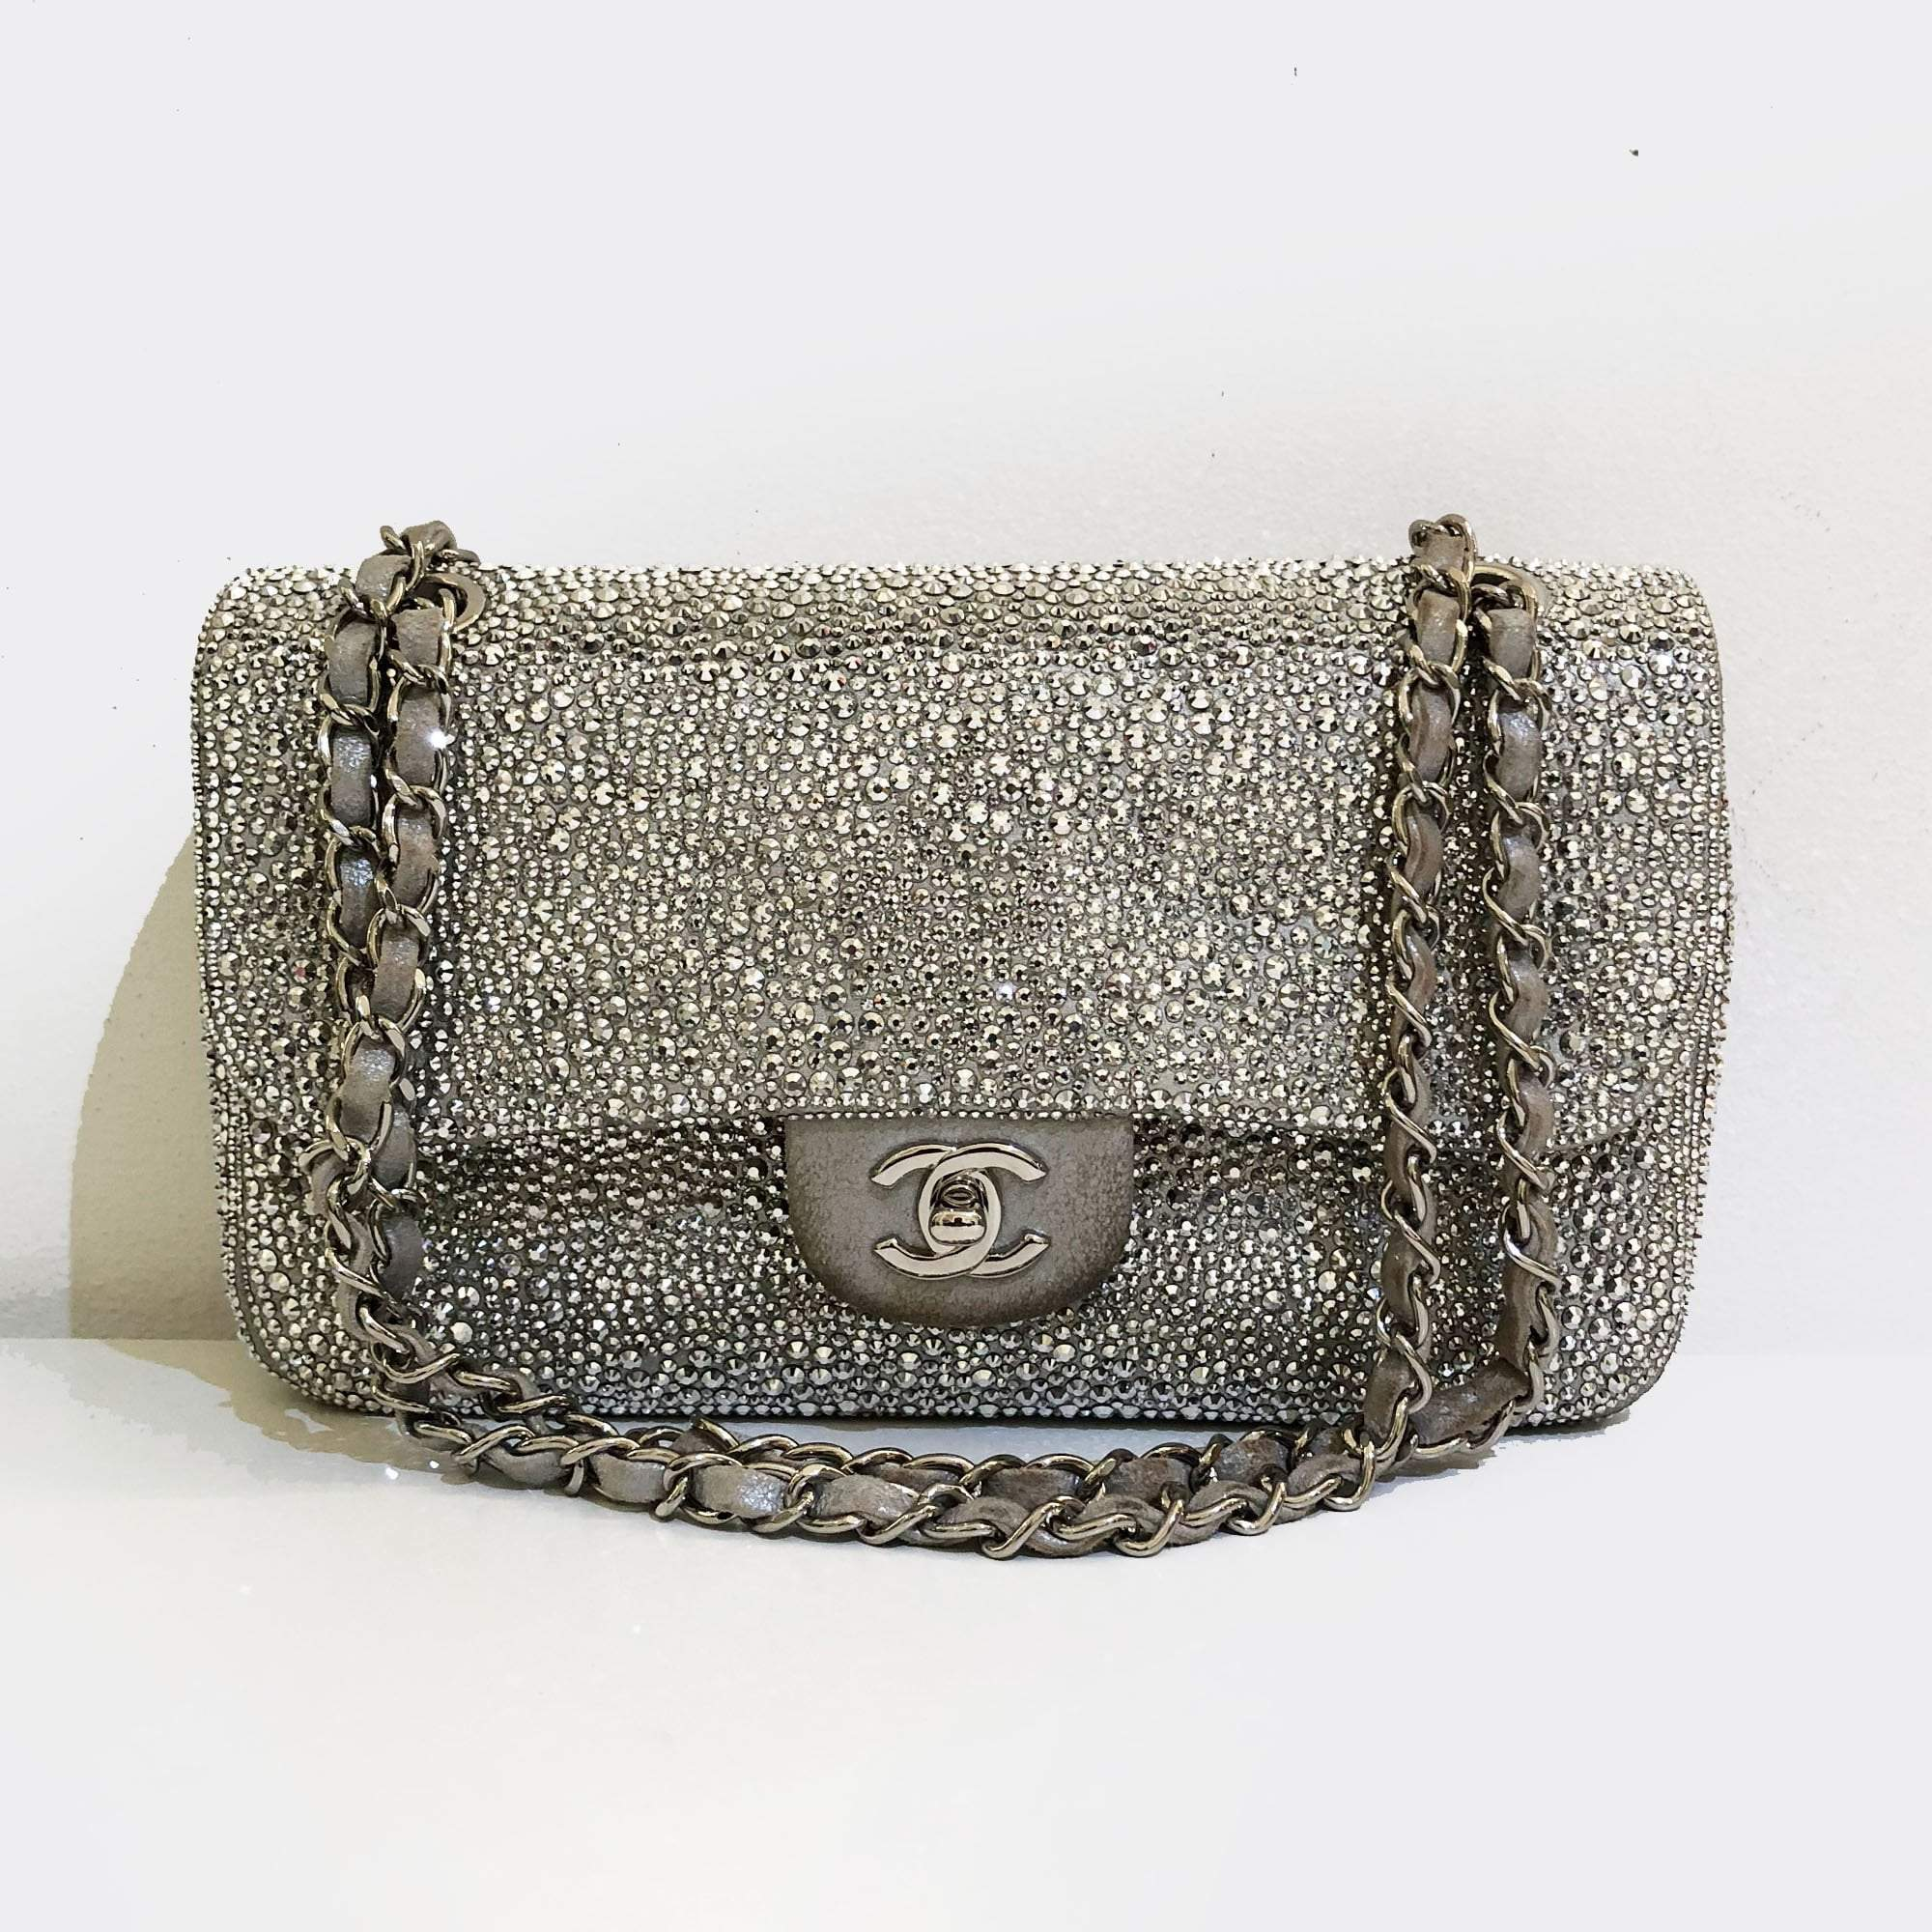 Chanel Strass Encrusted Medium Flap Silver Bag